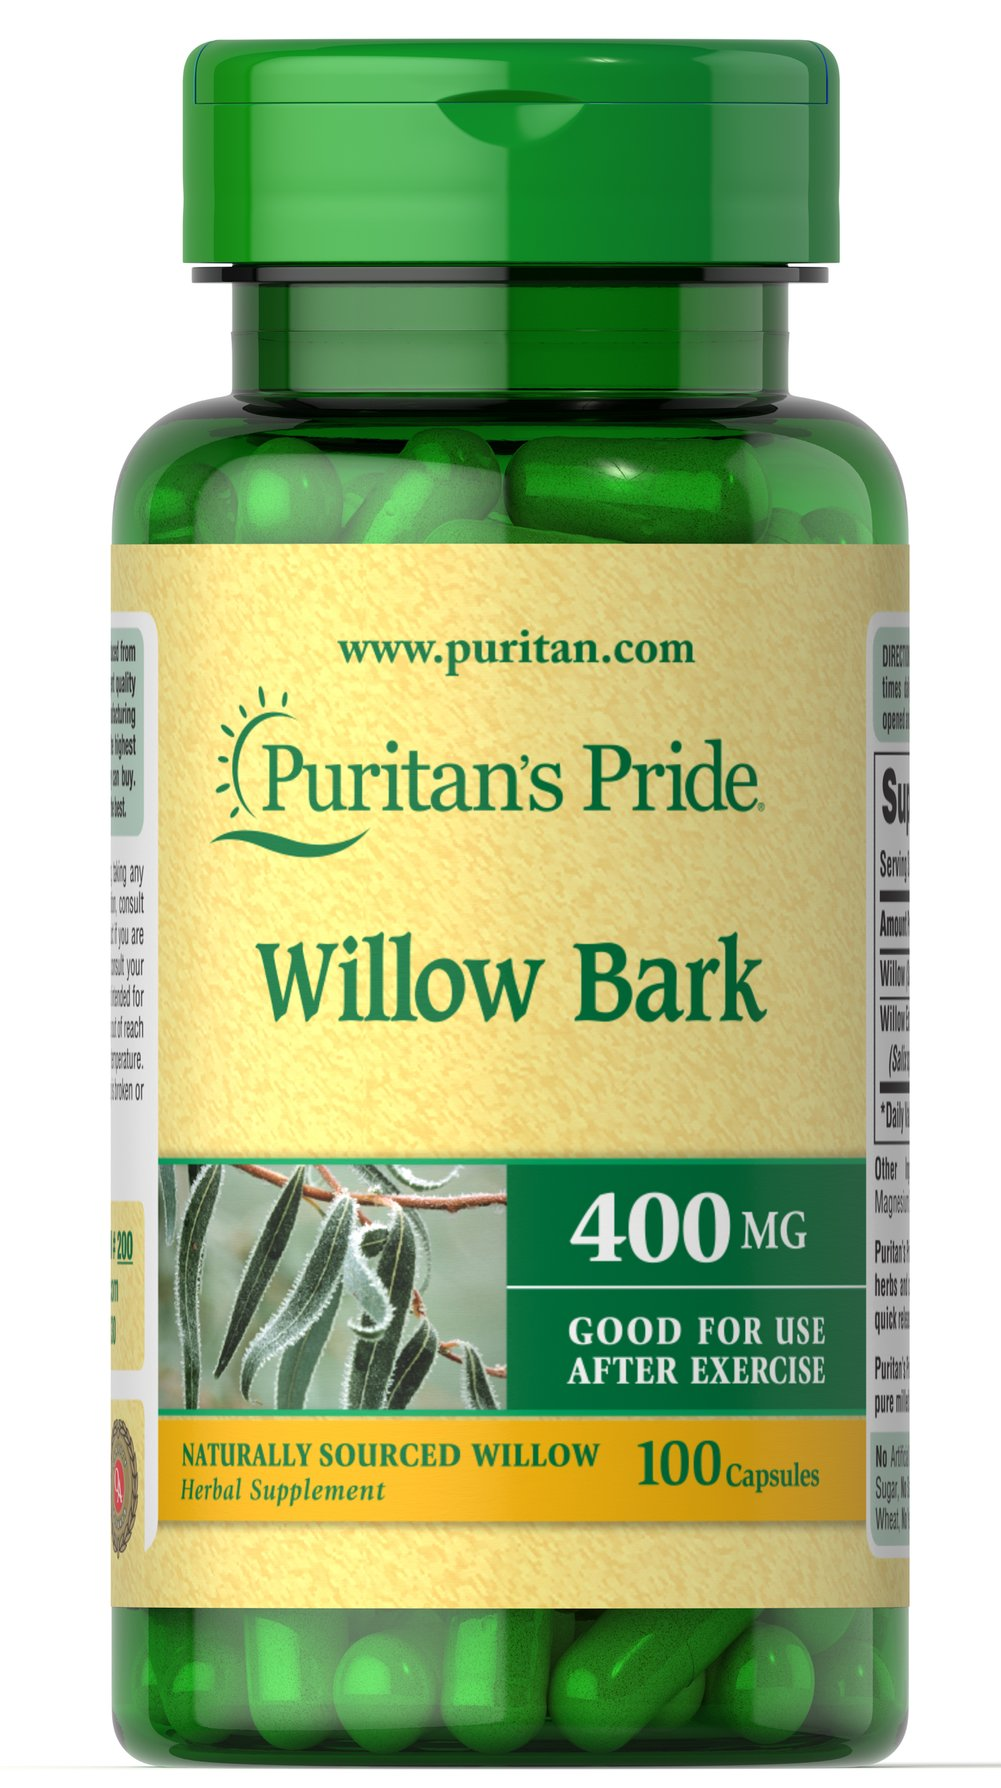 White Willow Bark 400 mg <p> Good for Minor Muscle Pain After Exercise**</p> 100 Capsules 400 mg $9.29